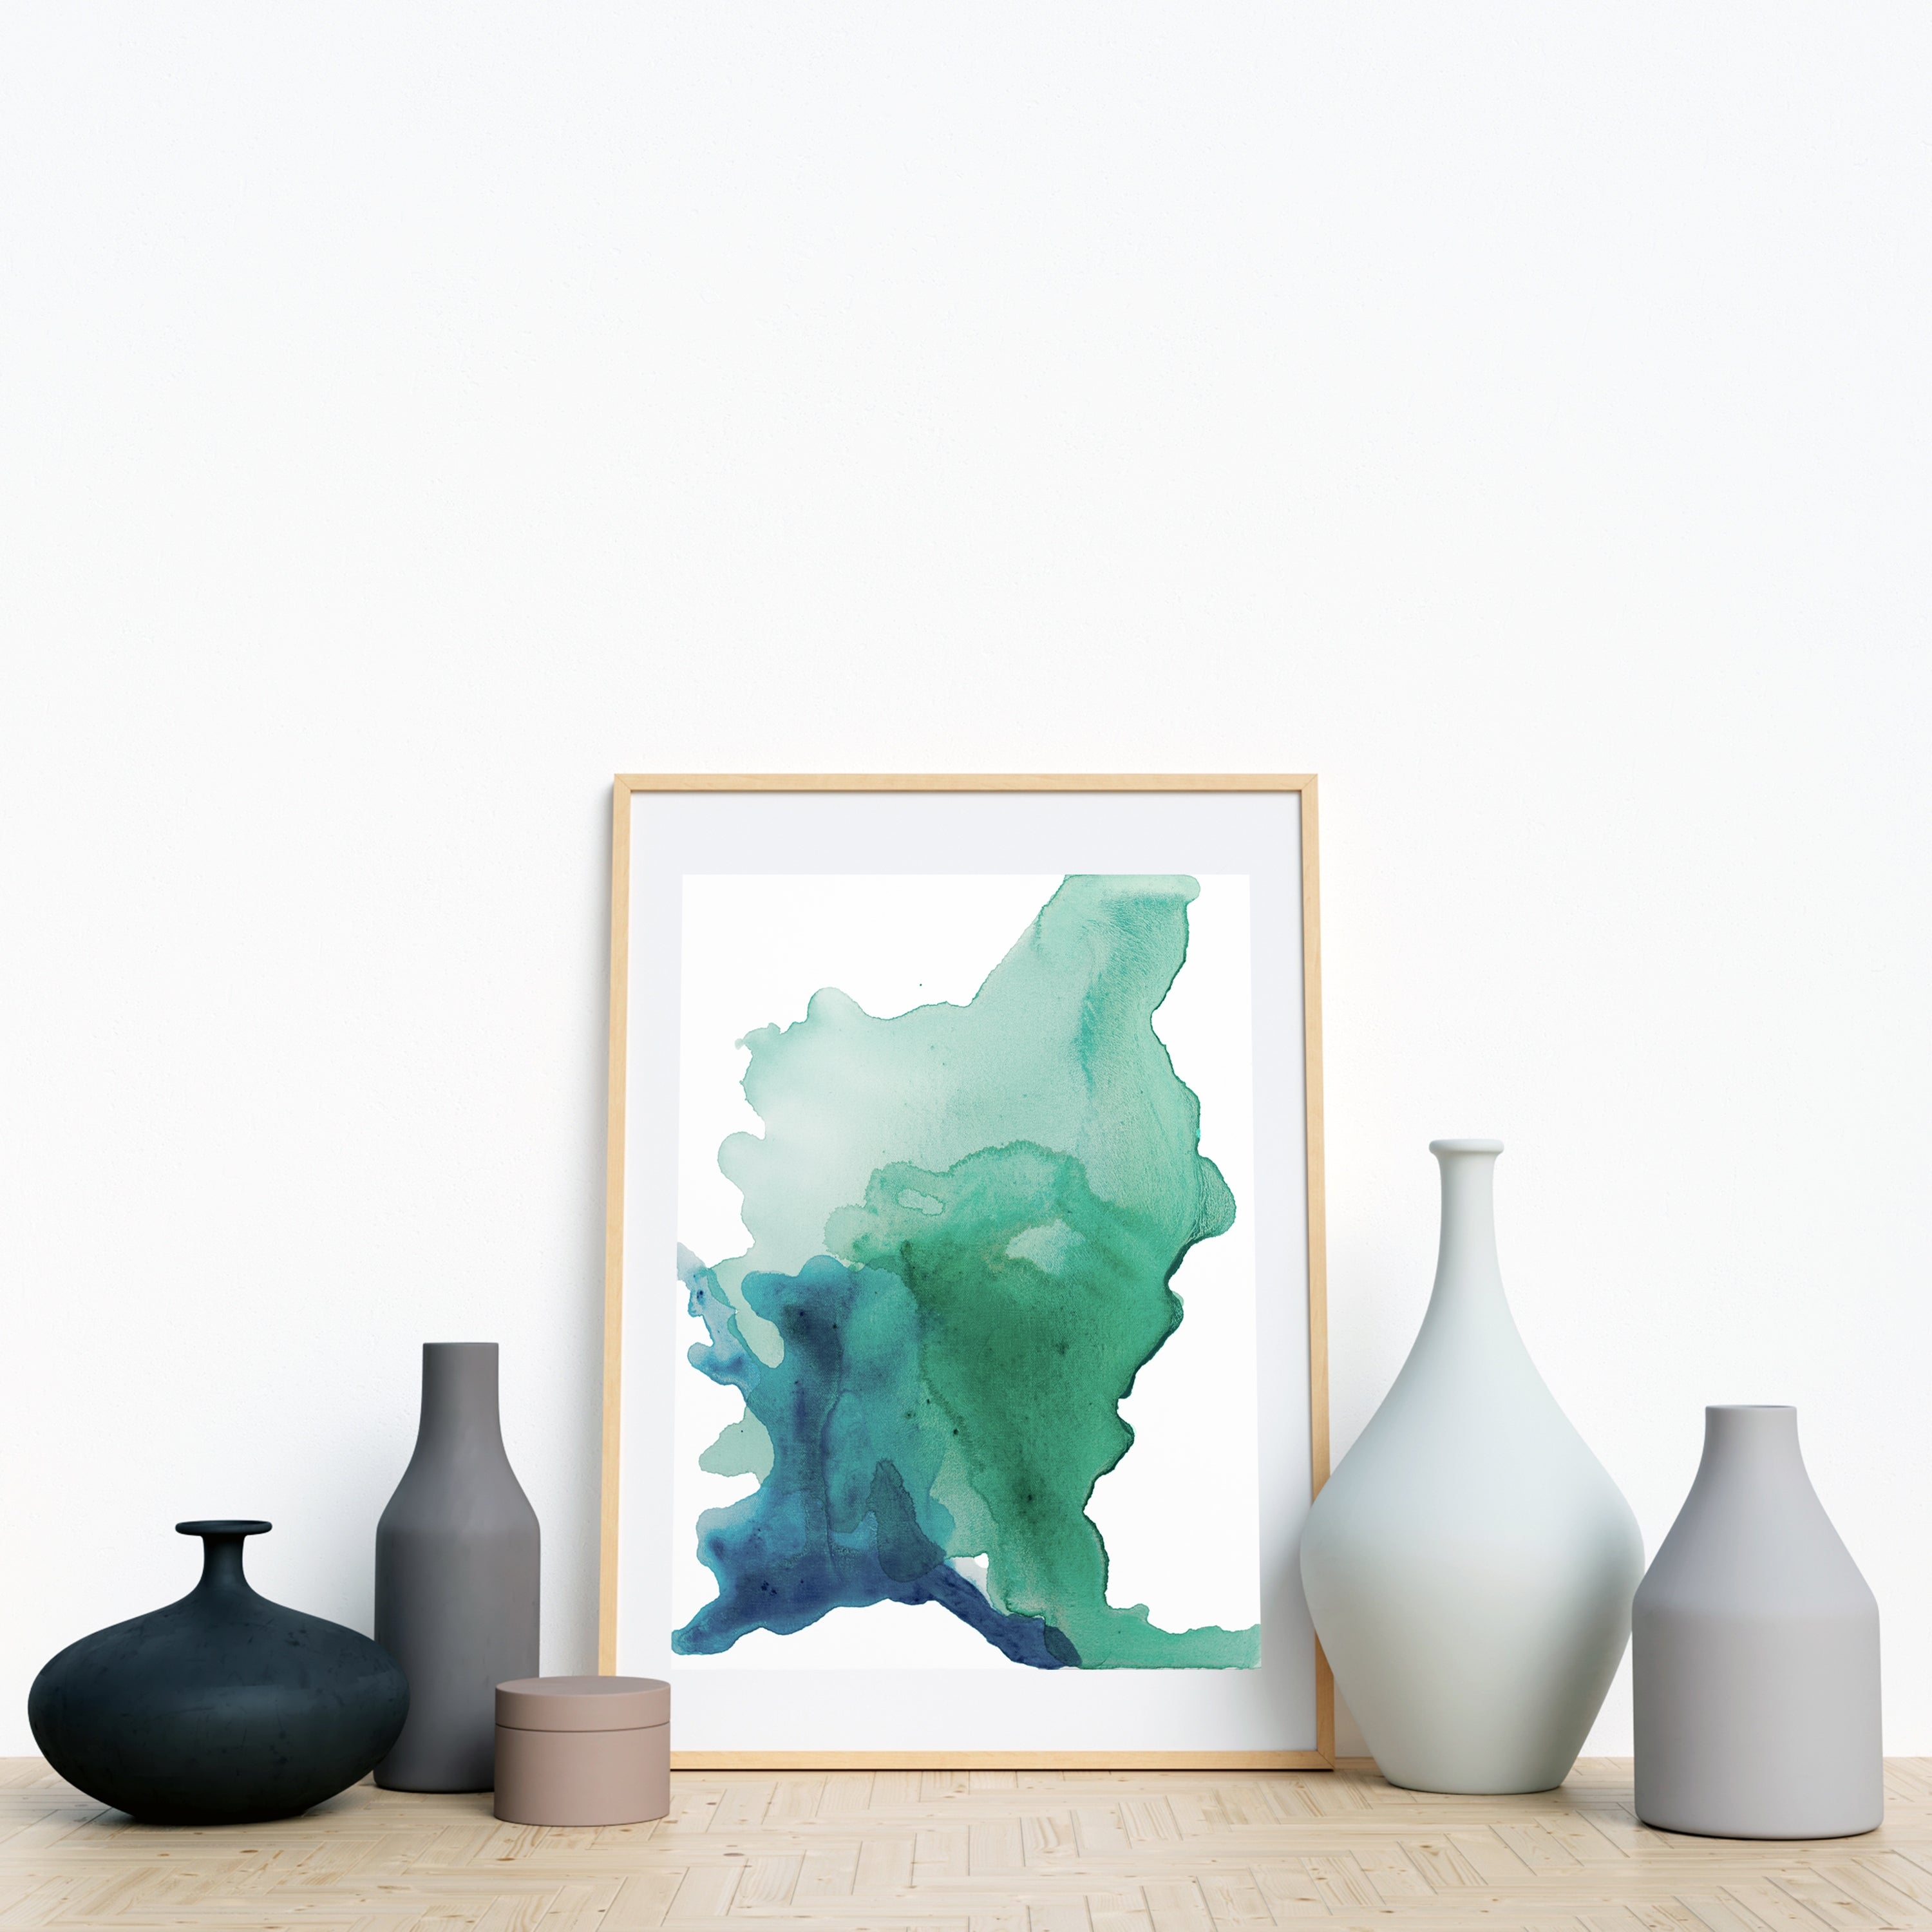 Abstract painting on canvas, fluid painting on canvas, green, light green, aqua, turquoise, oceanic art